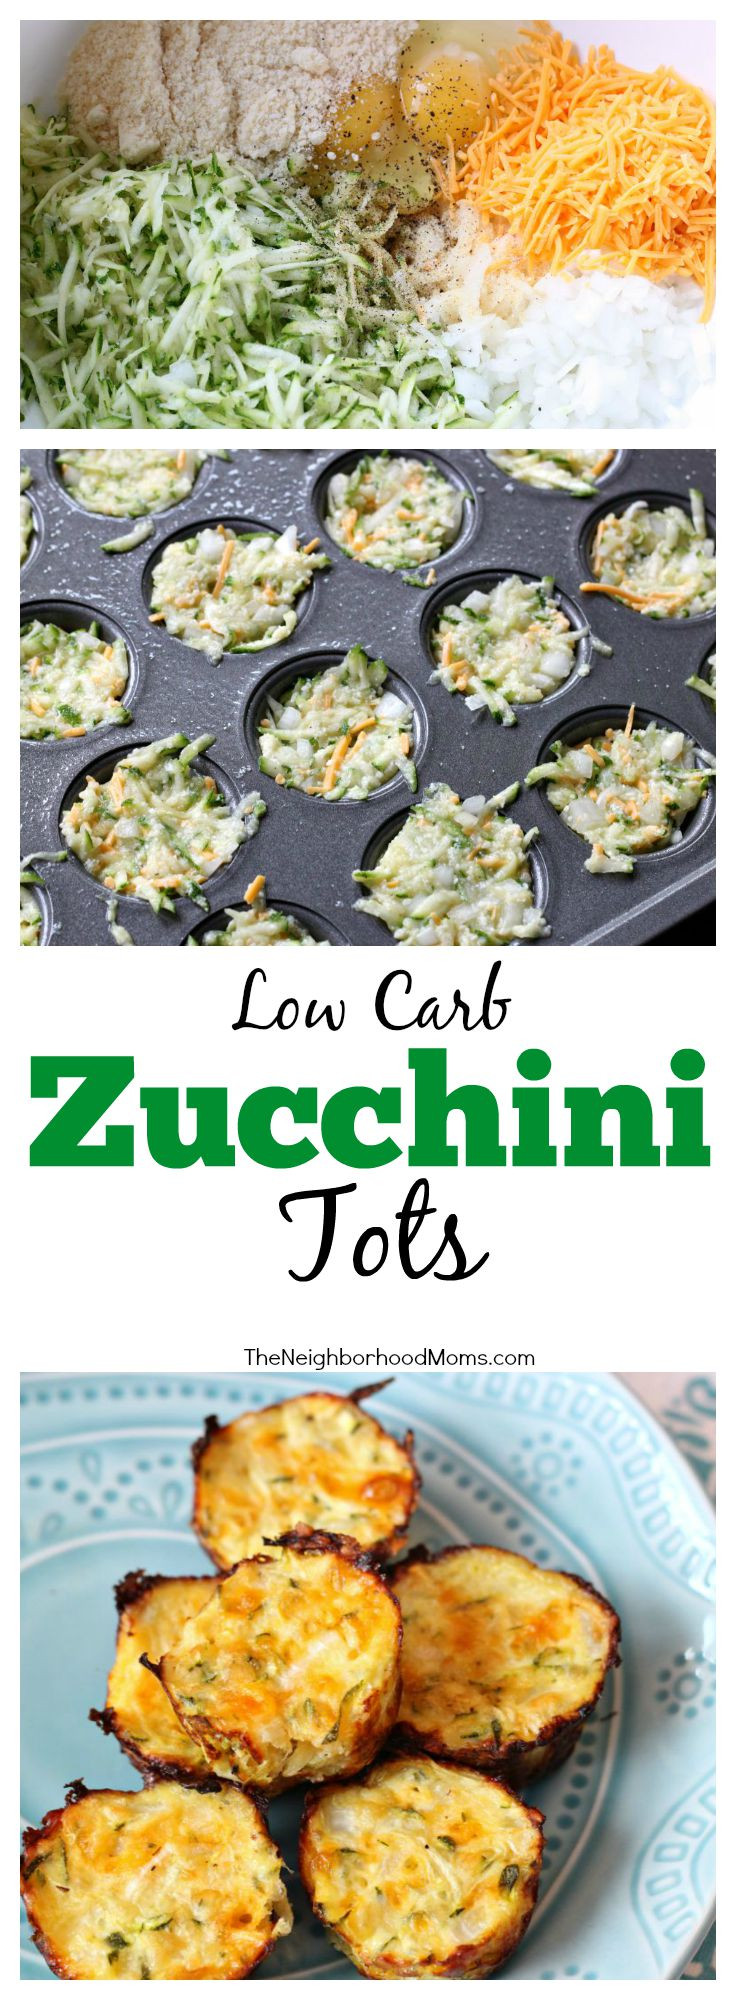 Zucchini Recipes Low Carb  Low Carb Zucchini Tots The Neighborhood Moms